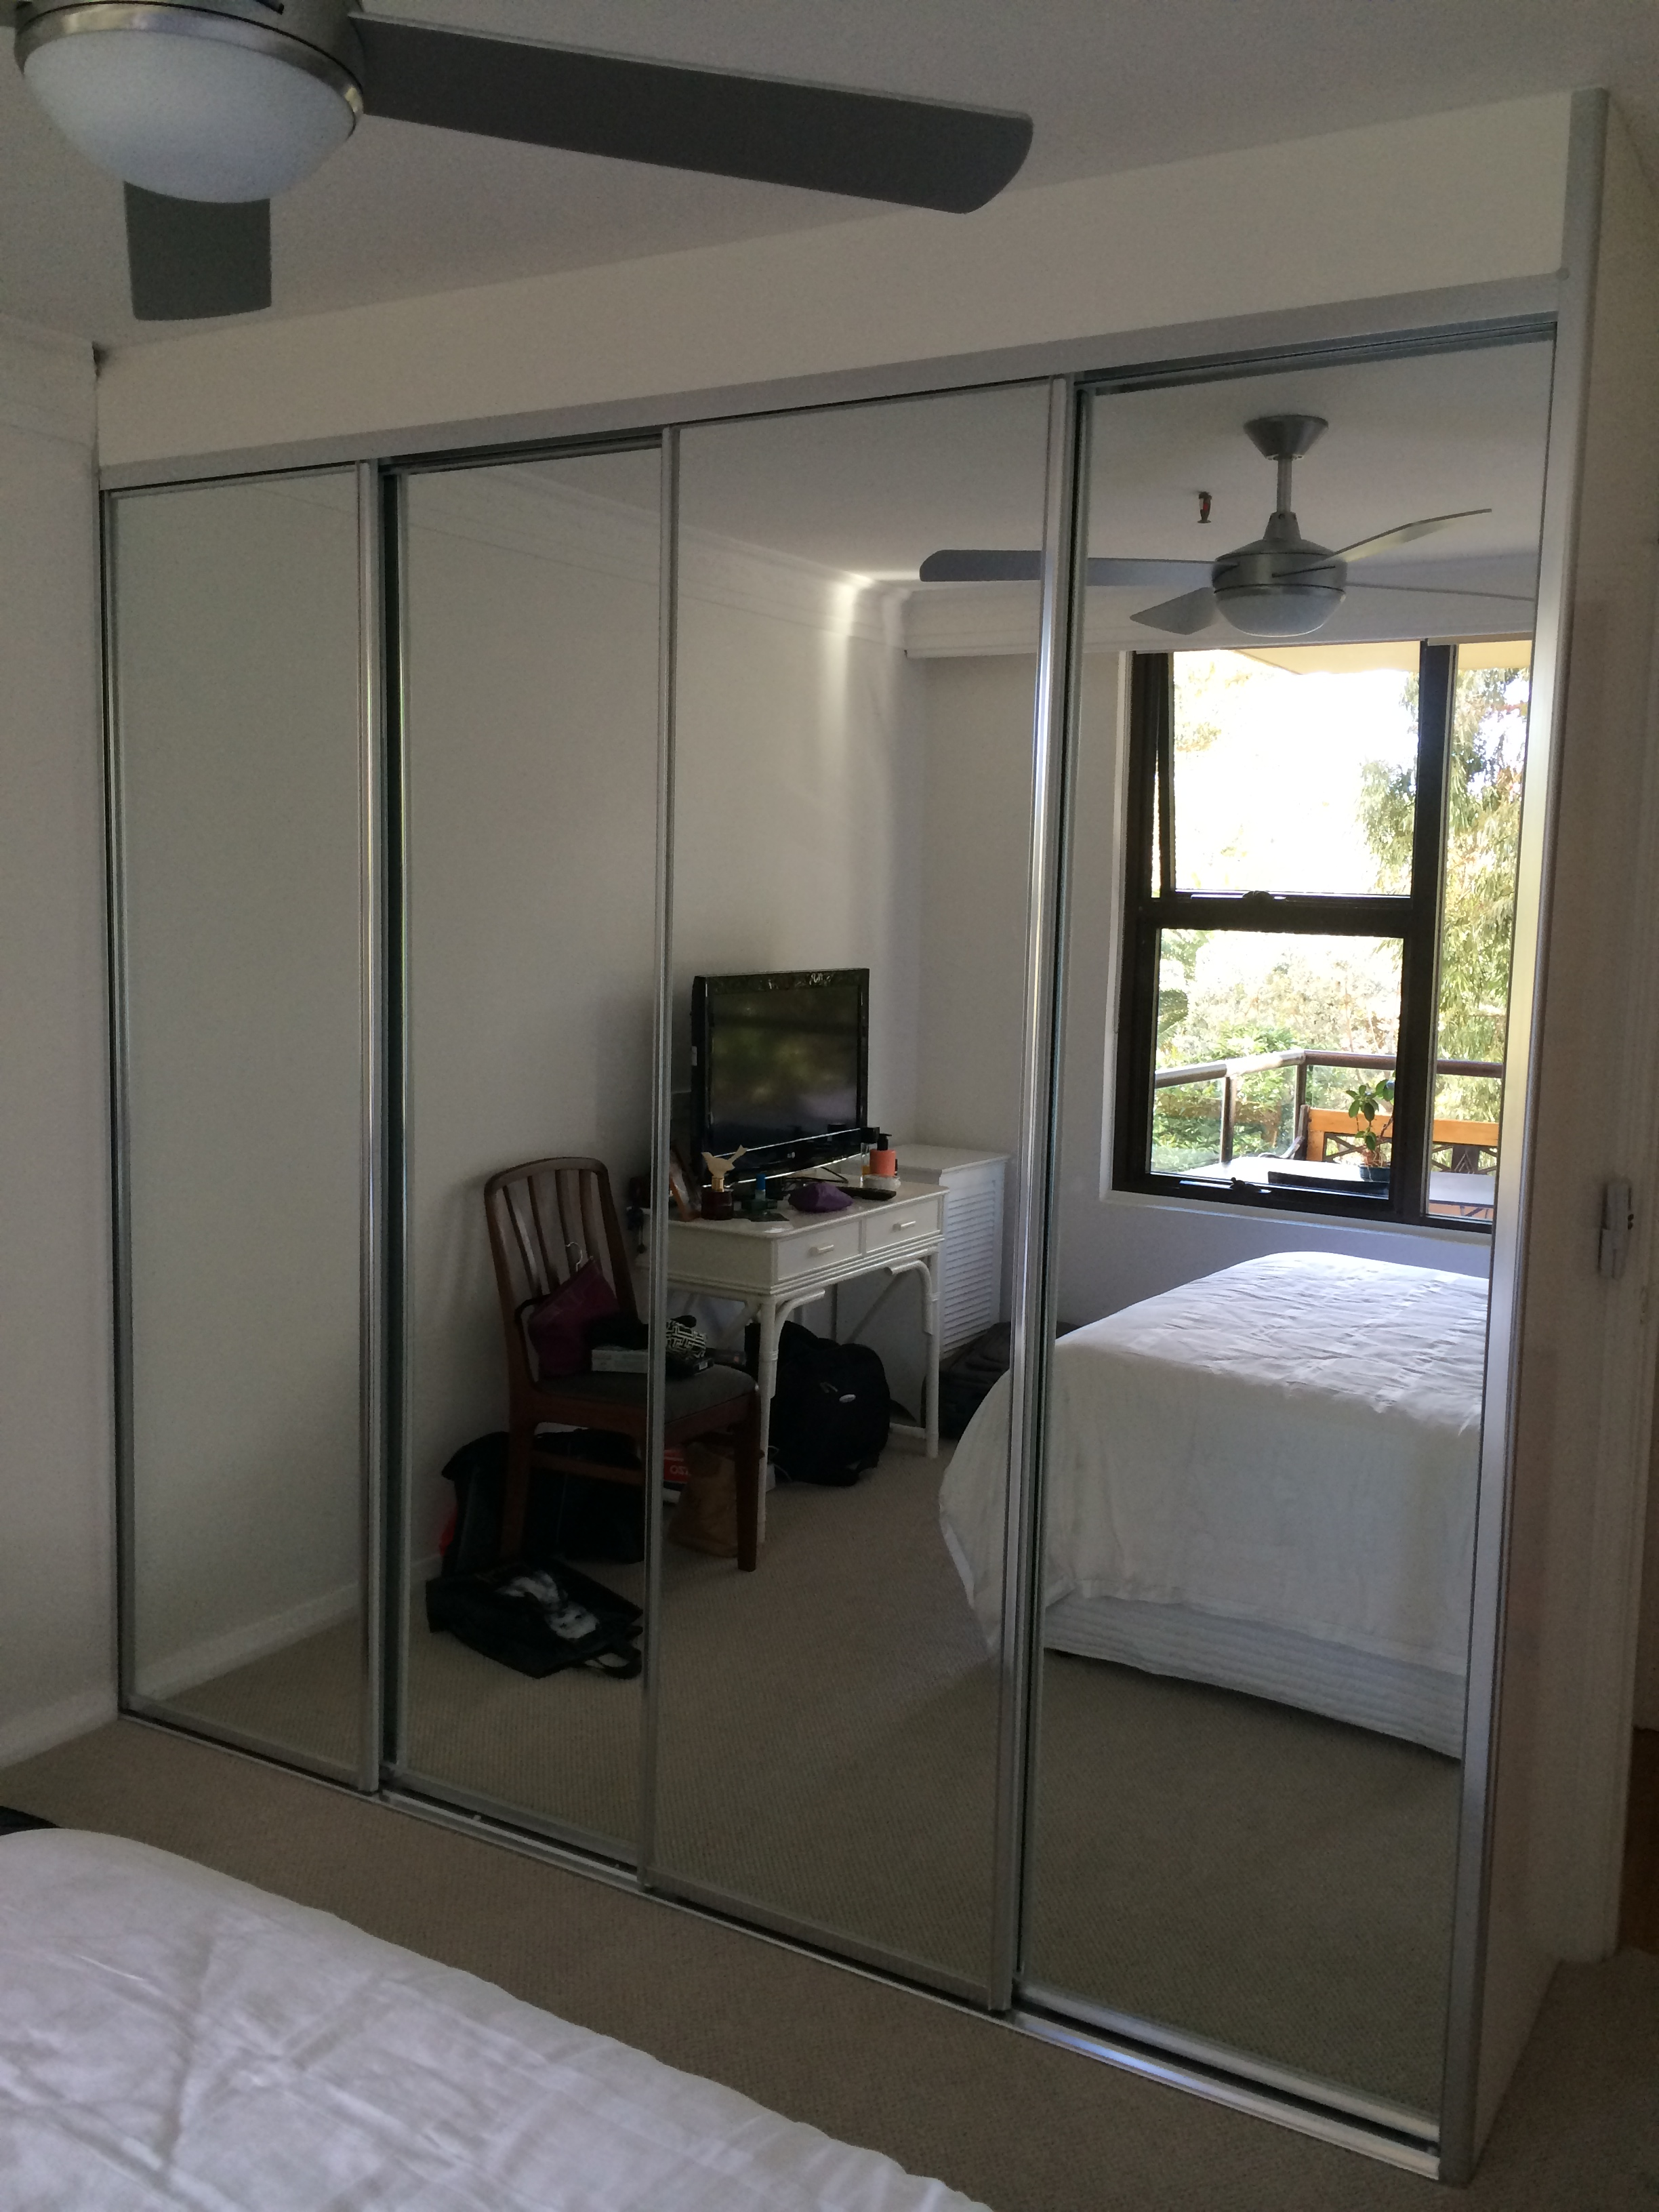 four door mirror wardrobe with polished silver frame.JPG